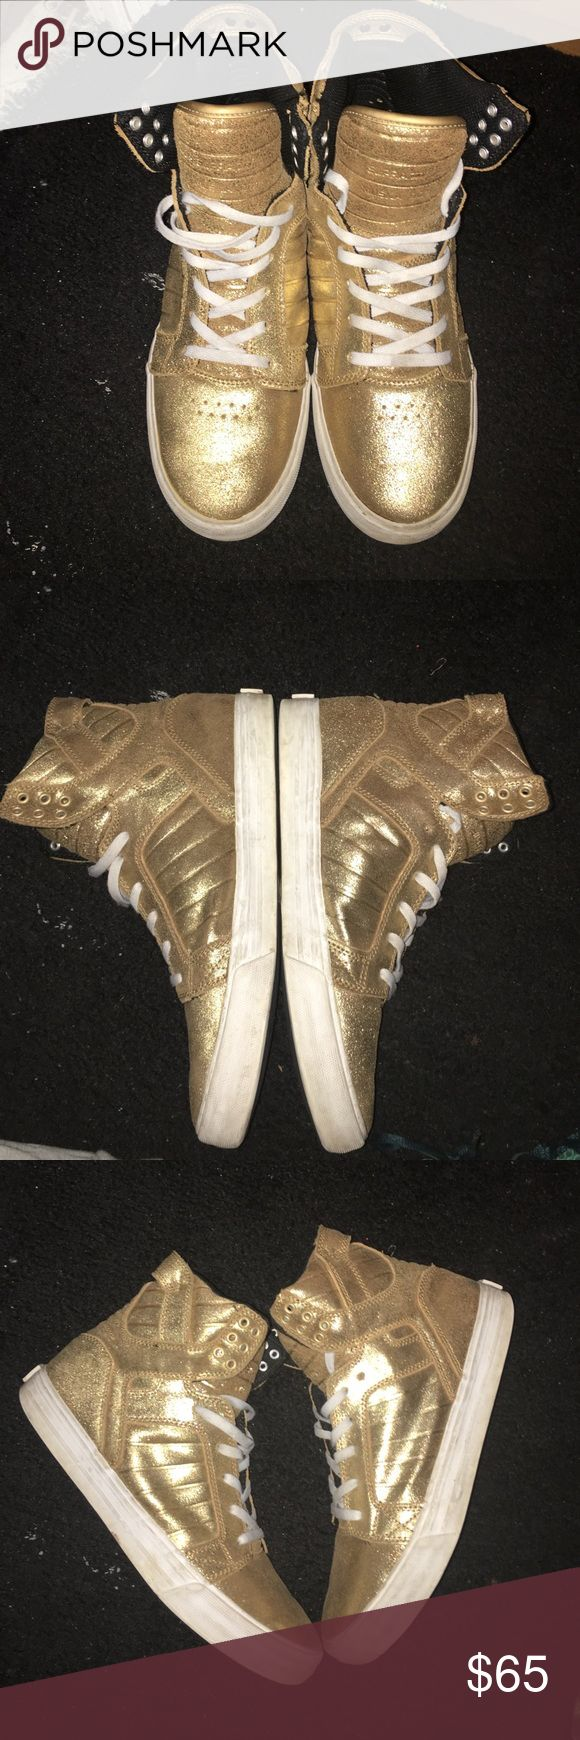 Supra Skytop (Rose Gold ) Supra Skytop (Gold ) for sale, I purchased these 2 years ago however after about 3-4 wears they fell out of rotation and have been sitting for a while. I am looking to clean out my closet and get rid of them. Size 9.5 (men) ,fit true to size , very minor scuffing from walking , mid sole needs to be wiped down a bit , not original laces, the pictures don't have insole however I still believe I have the original insoles no box however.  Any other questions feel free…